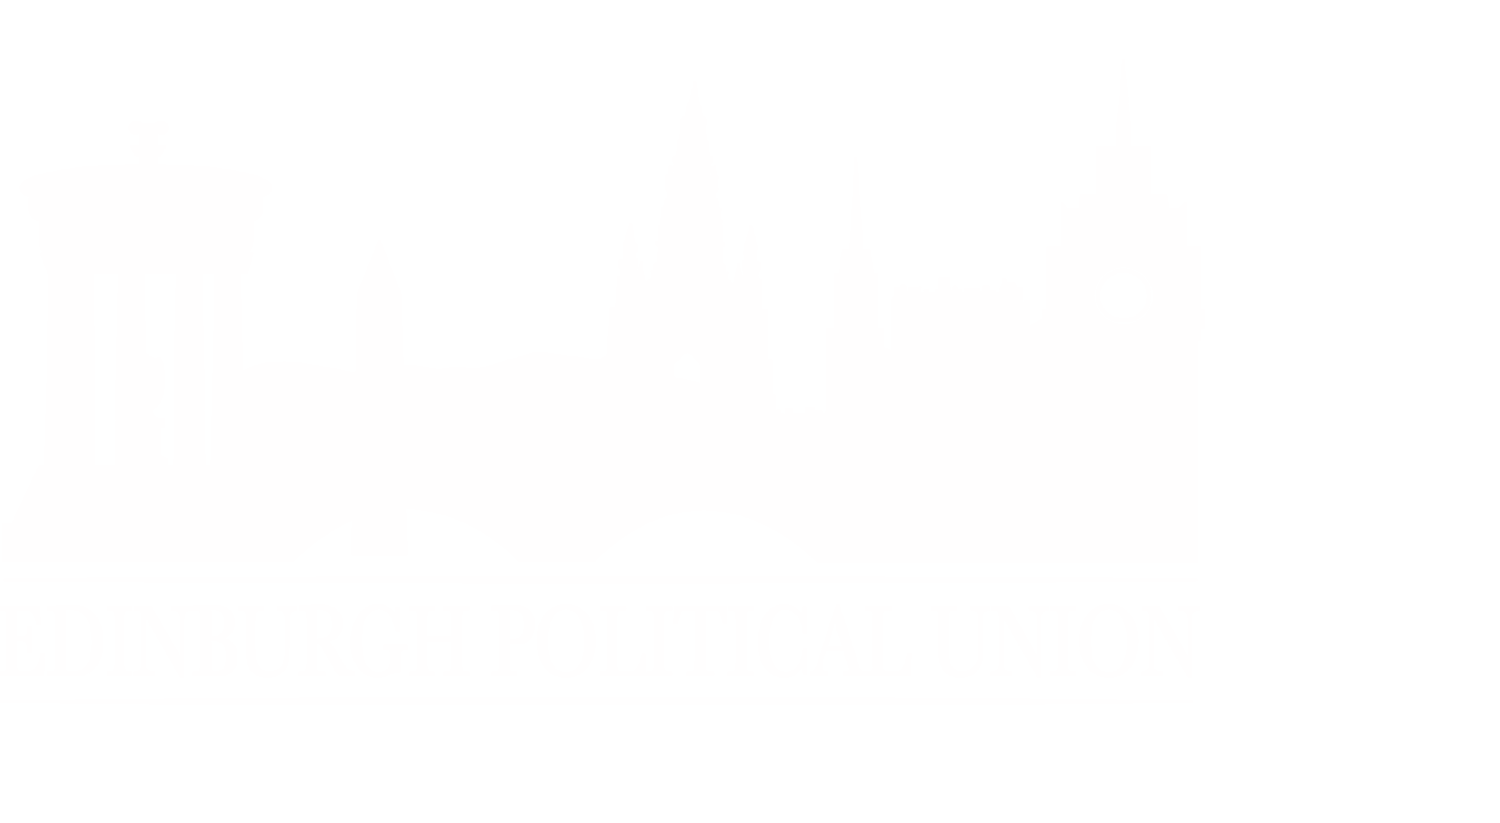 Edinburgh Political Union